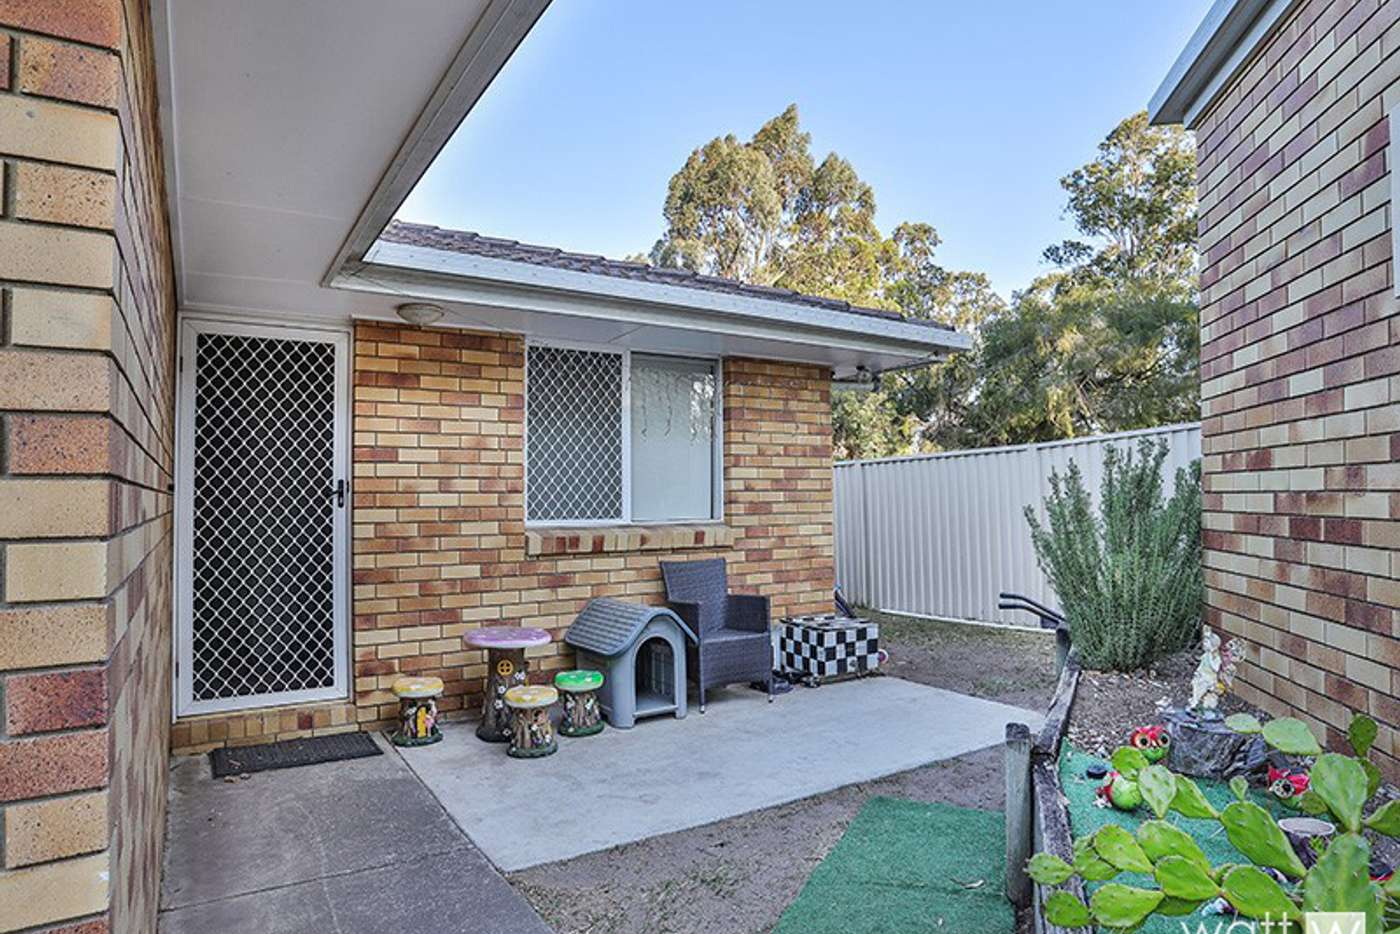 Main view of Homely house listing, 18 Brolga Place, Zillmere QLD 4034